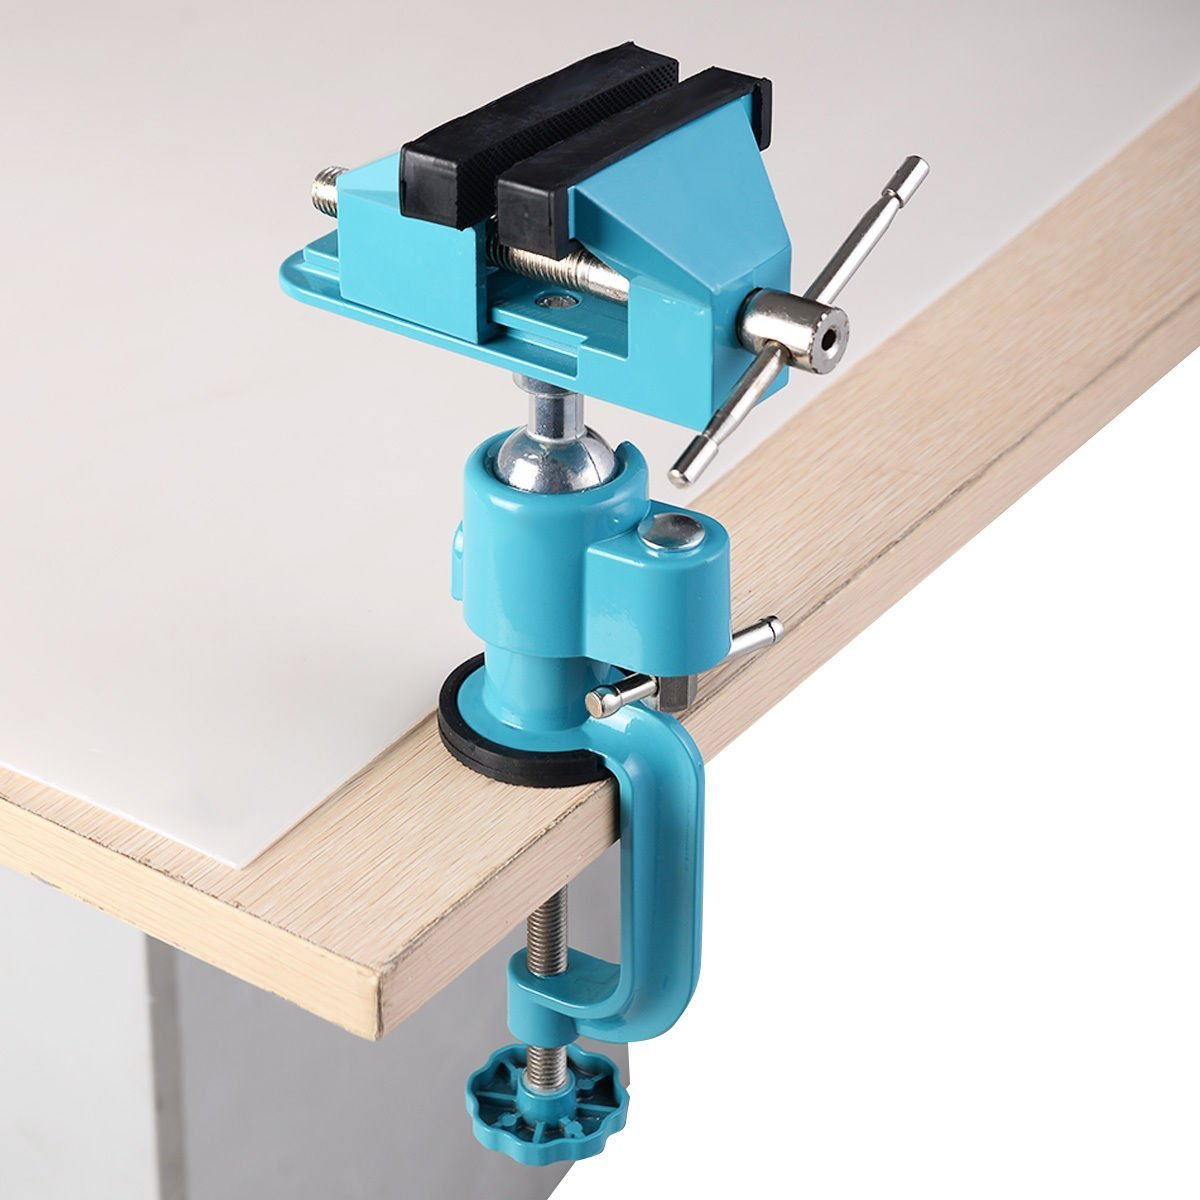 Goplus Bench Vise Swivel 3'' Tabletop Clamp Vice Tilts Rotate 360° Universal Work by Goplus (Image #1)